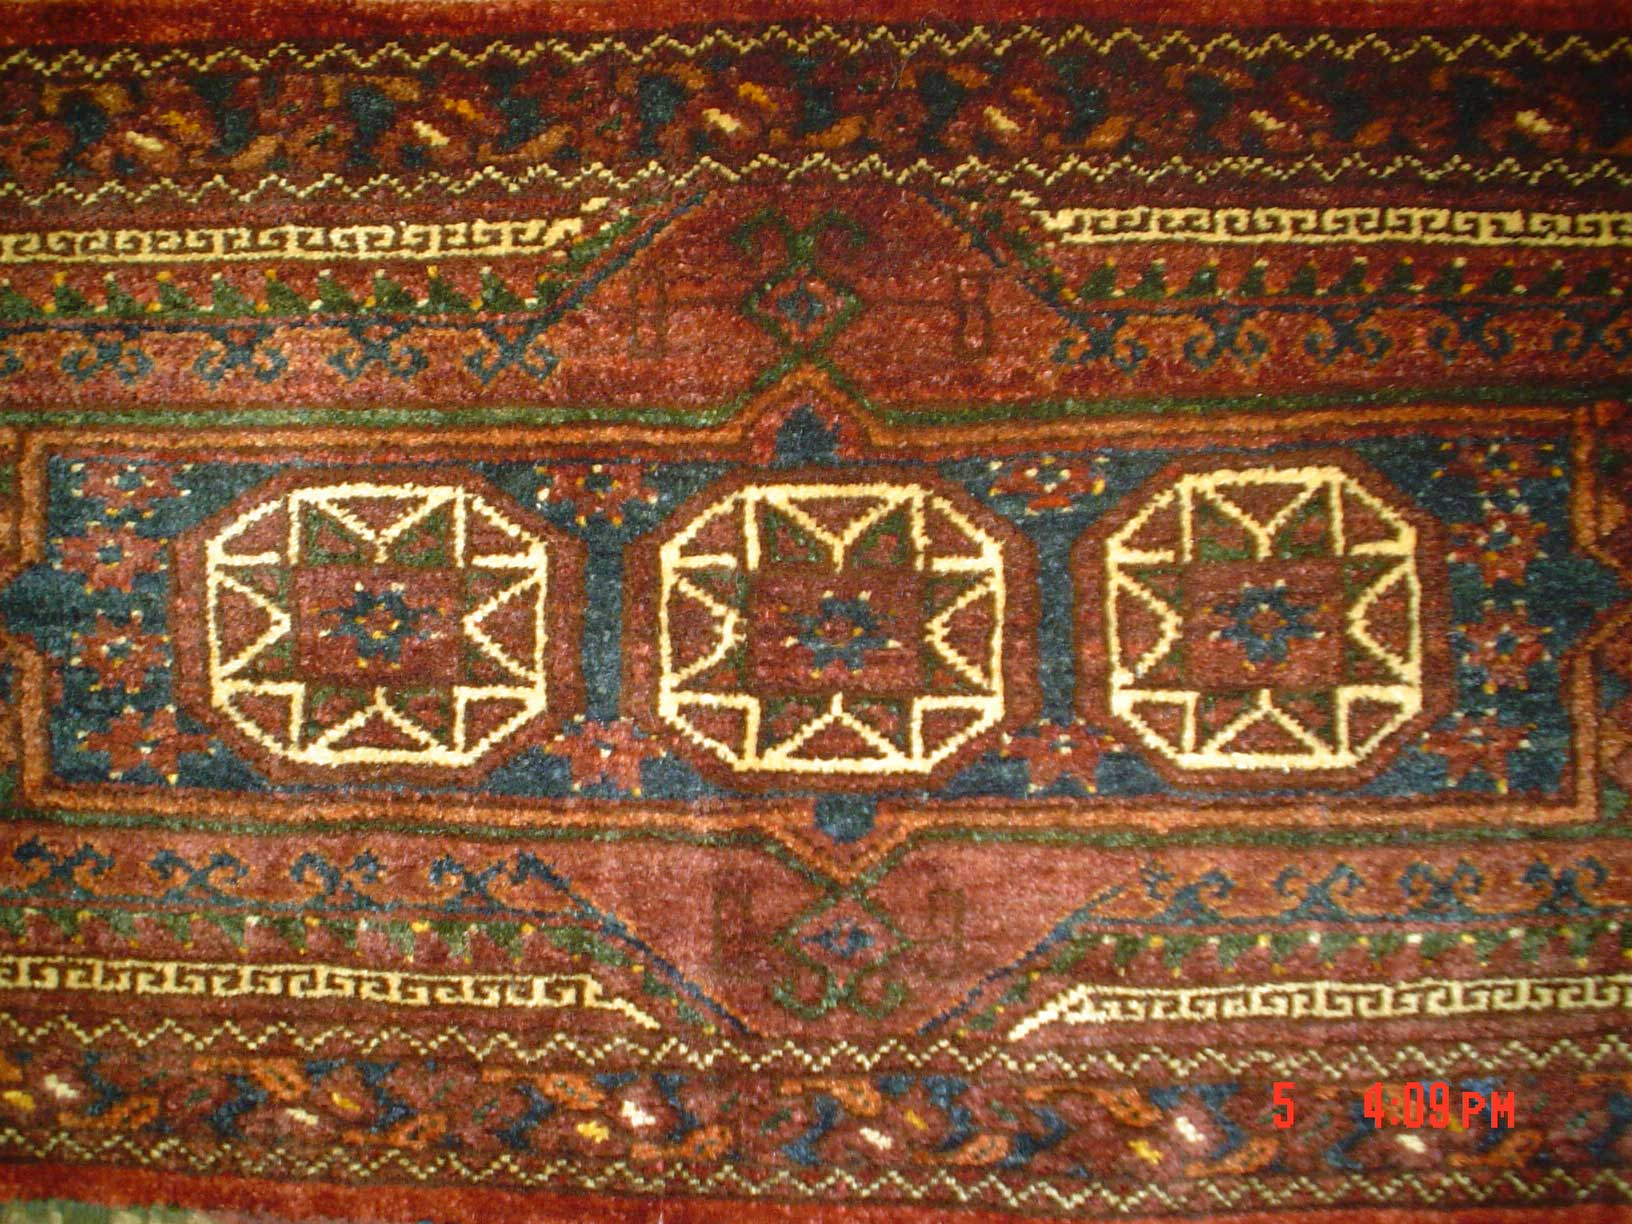 #1) Antique Balouch torba. Torba is a storage bag used by nomadic weavers.